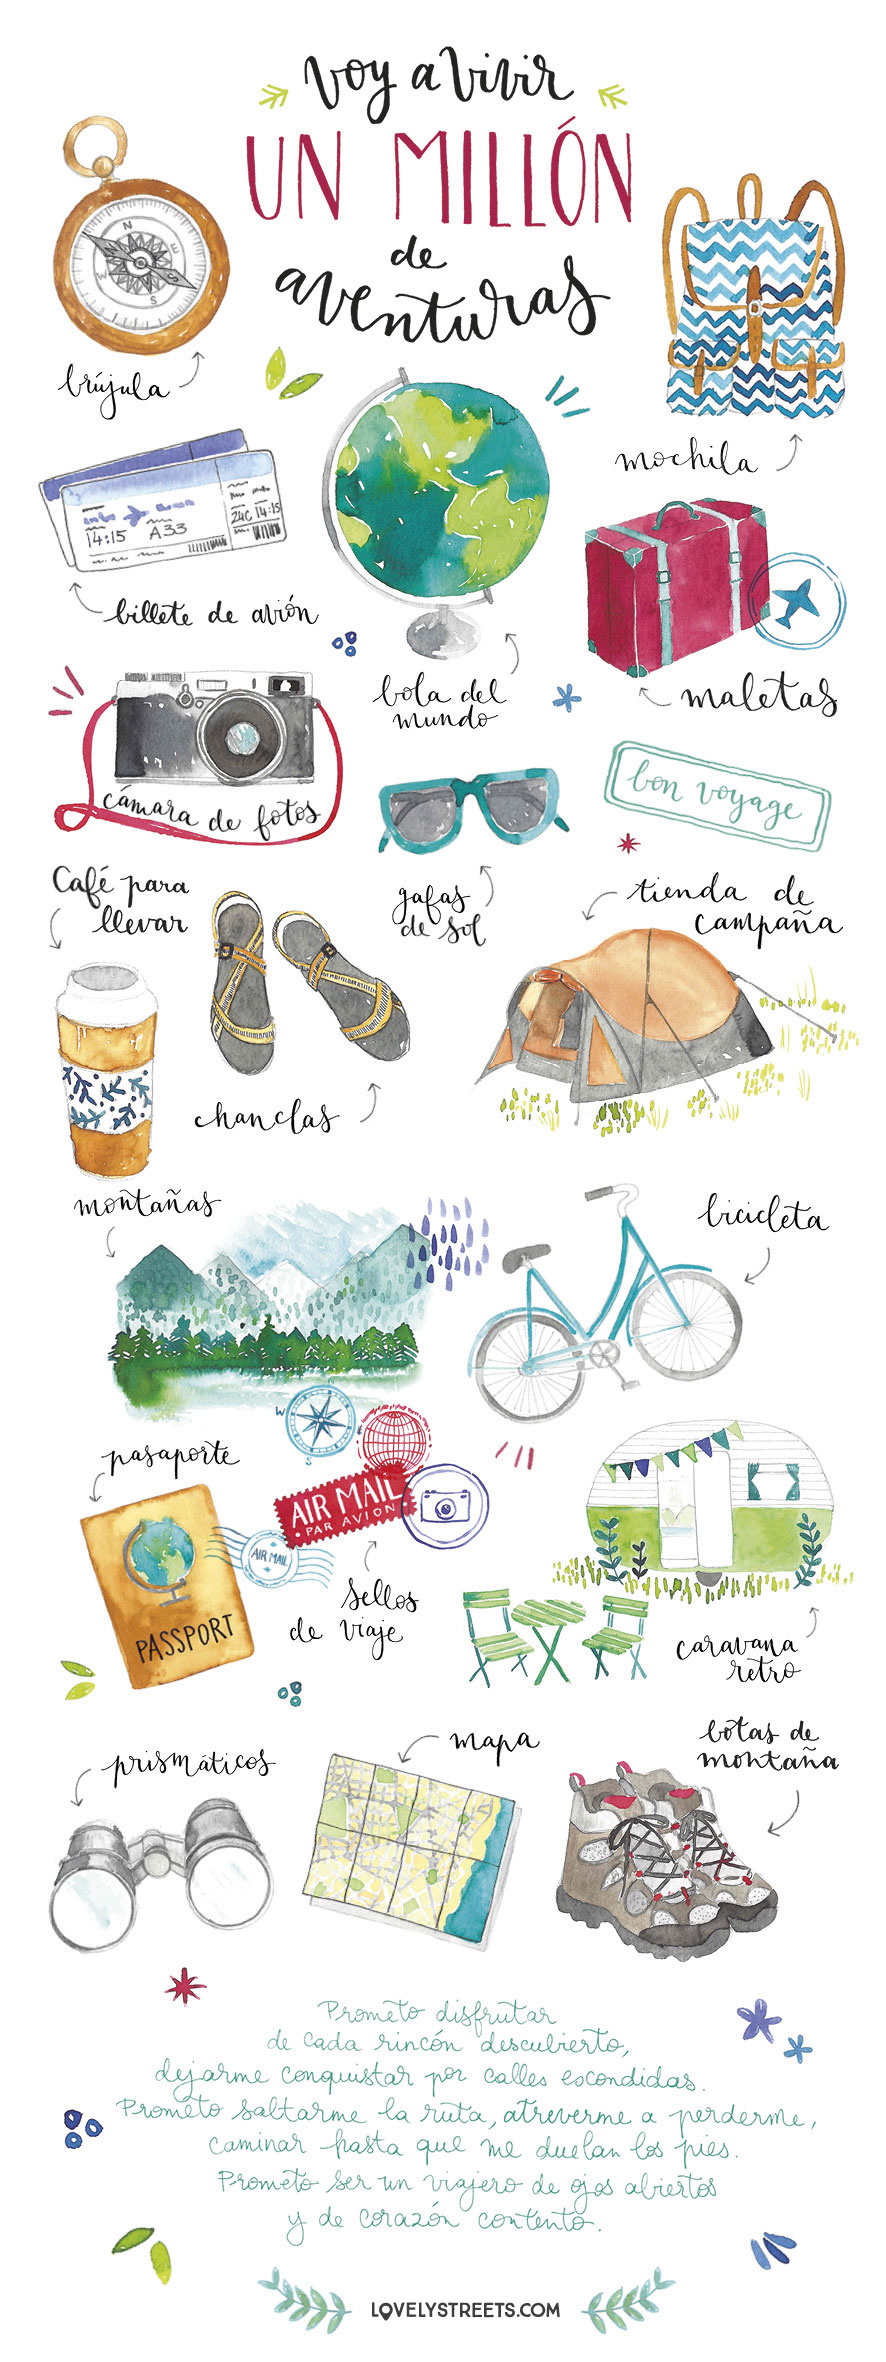 I-am-gonna-live-a million-adventures-travel-illustration-for-lovely-streets.jpg